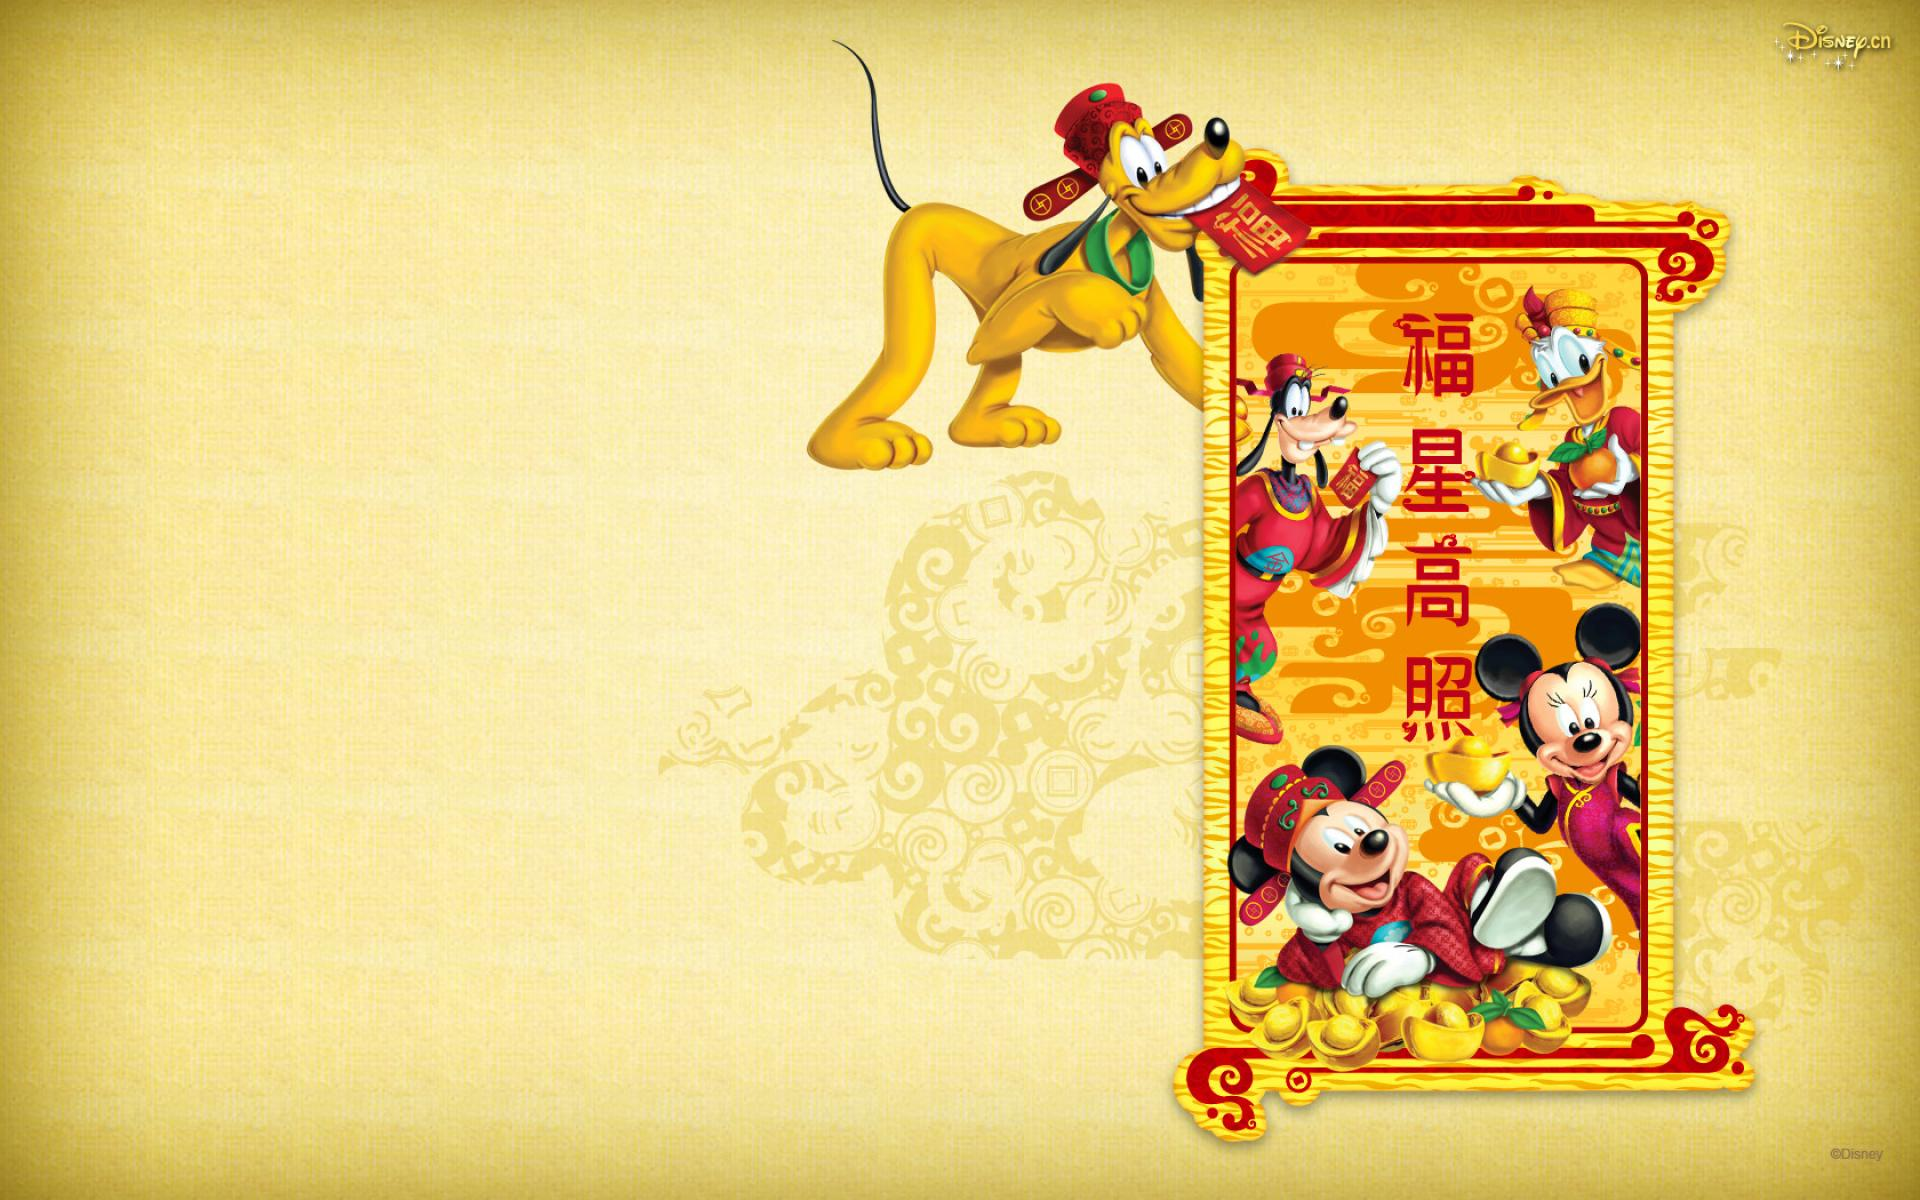 Winnie The Pooh Fall Wallpaper Mickey Mouse And Friends 高清壁纸 桌面背景 1920x1200 Id